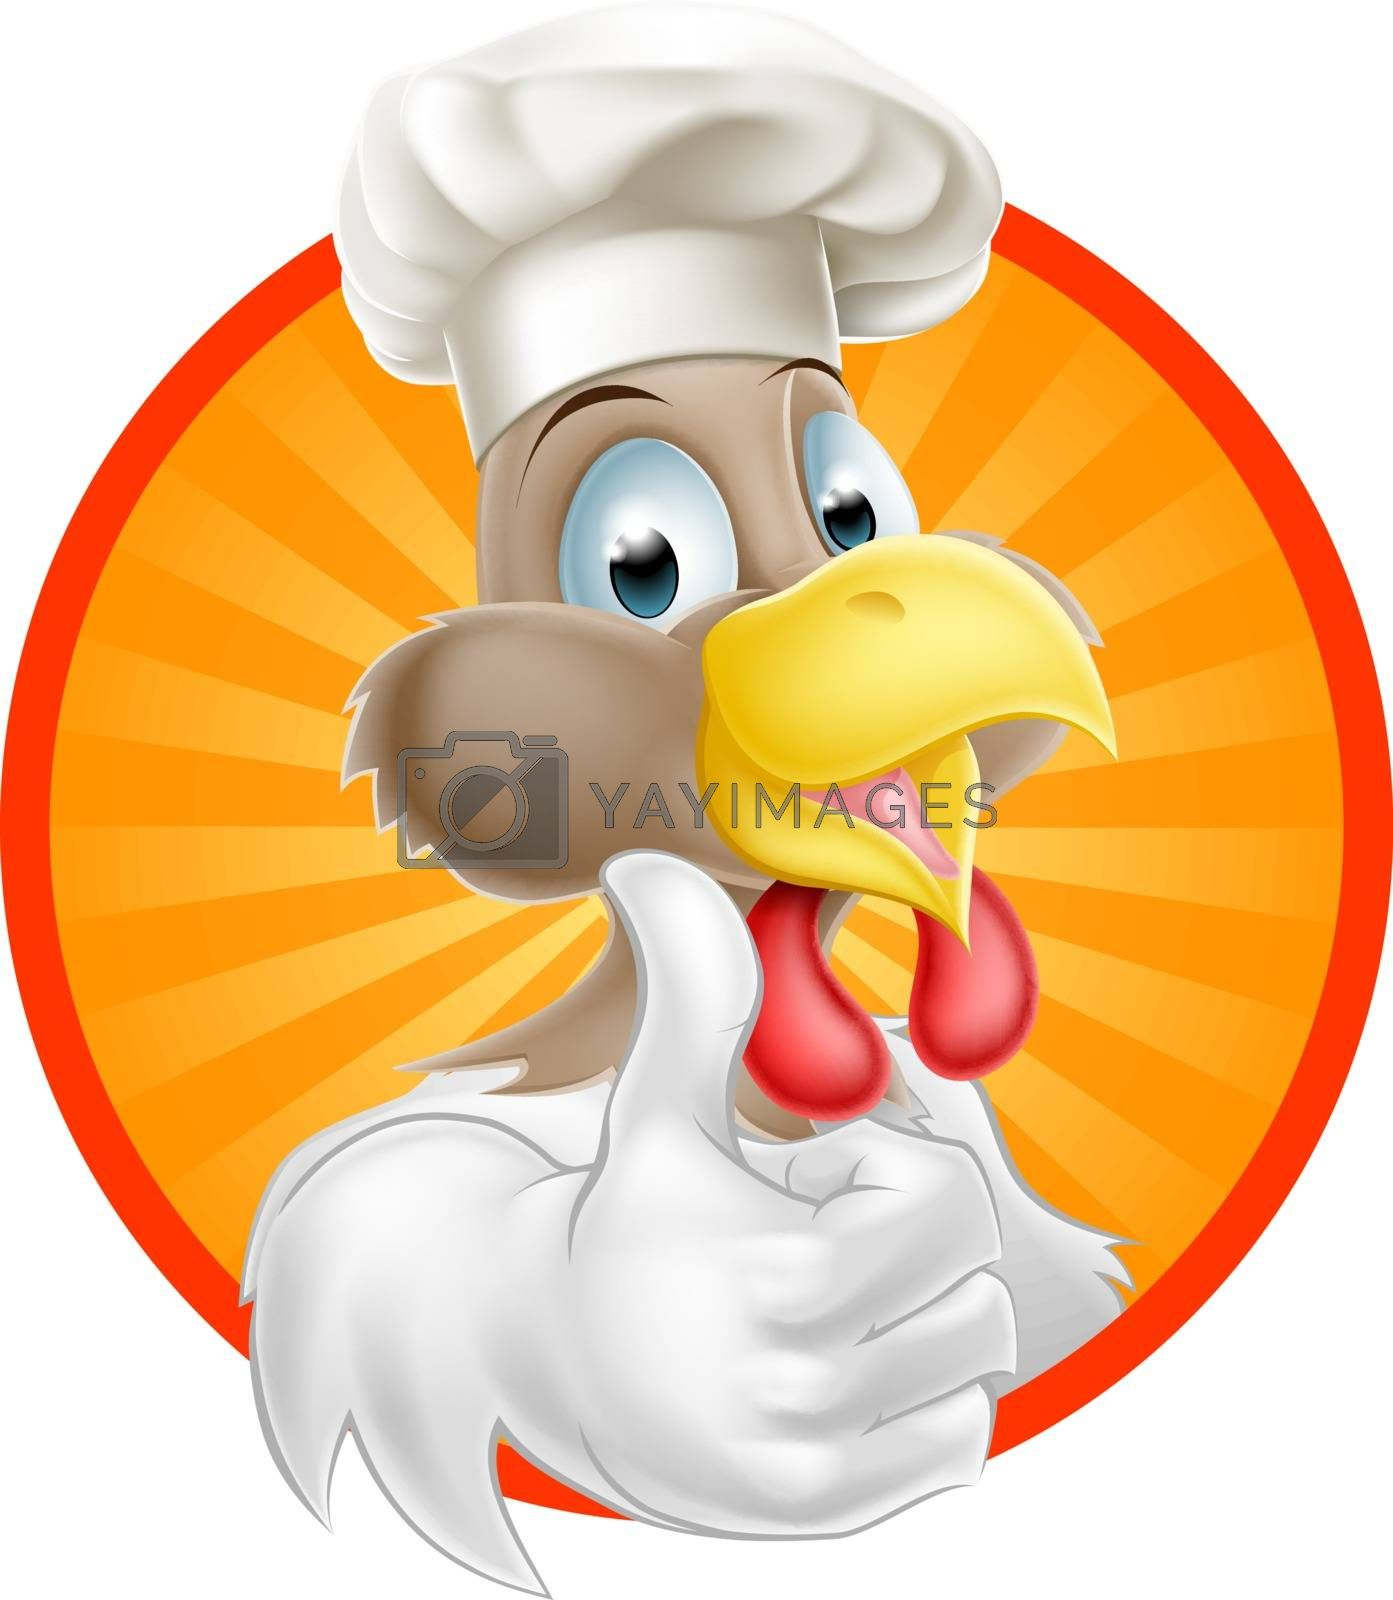 Cartoon chicken or rooster wearing a chef hat and giving a thumbs up